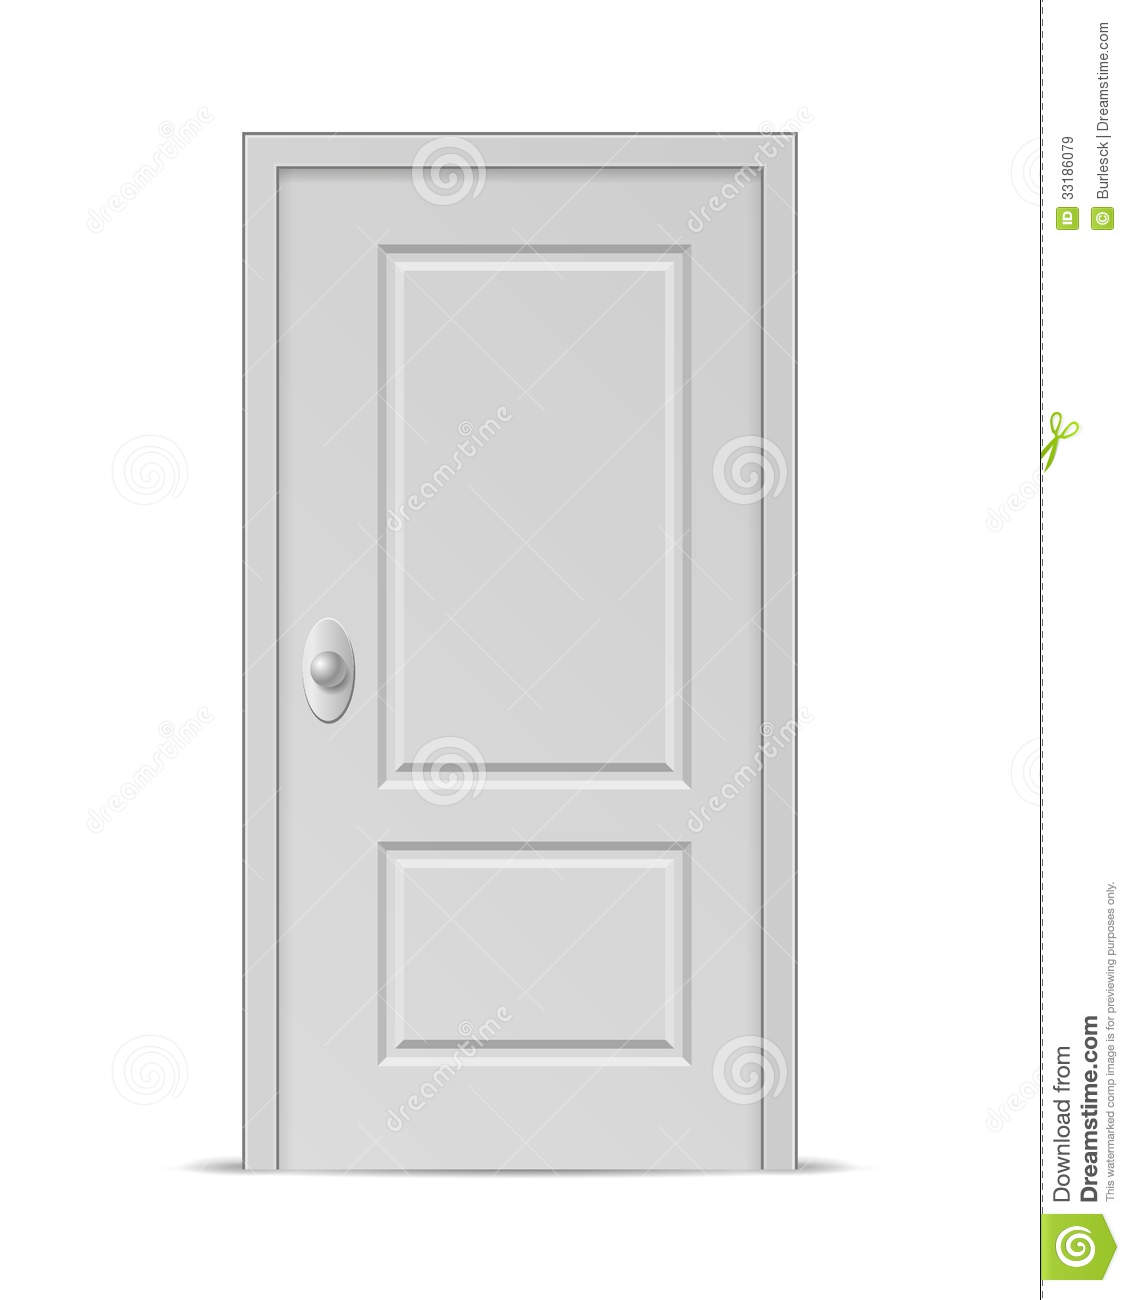 Closed Door Royalty Free Stock Images - Image: 33186079